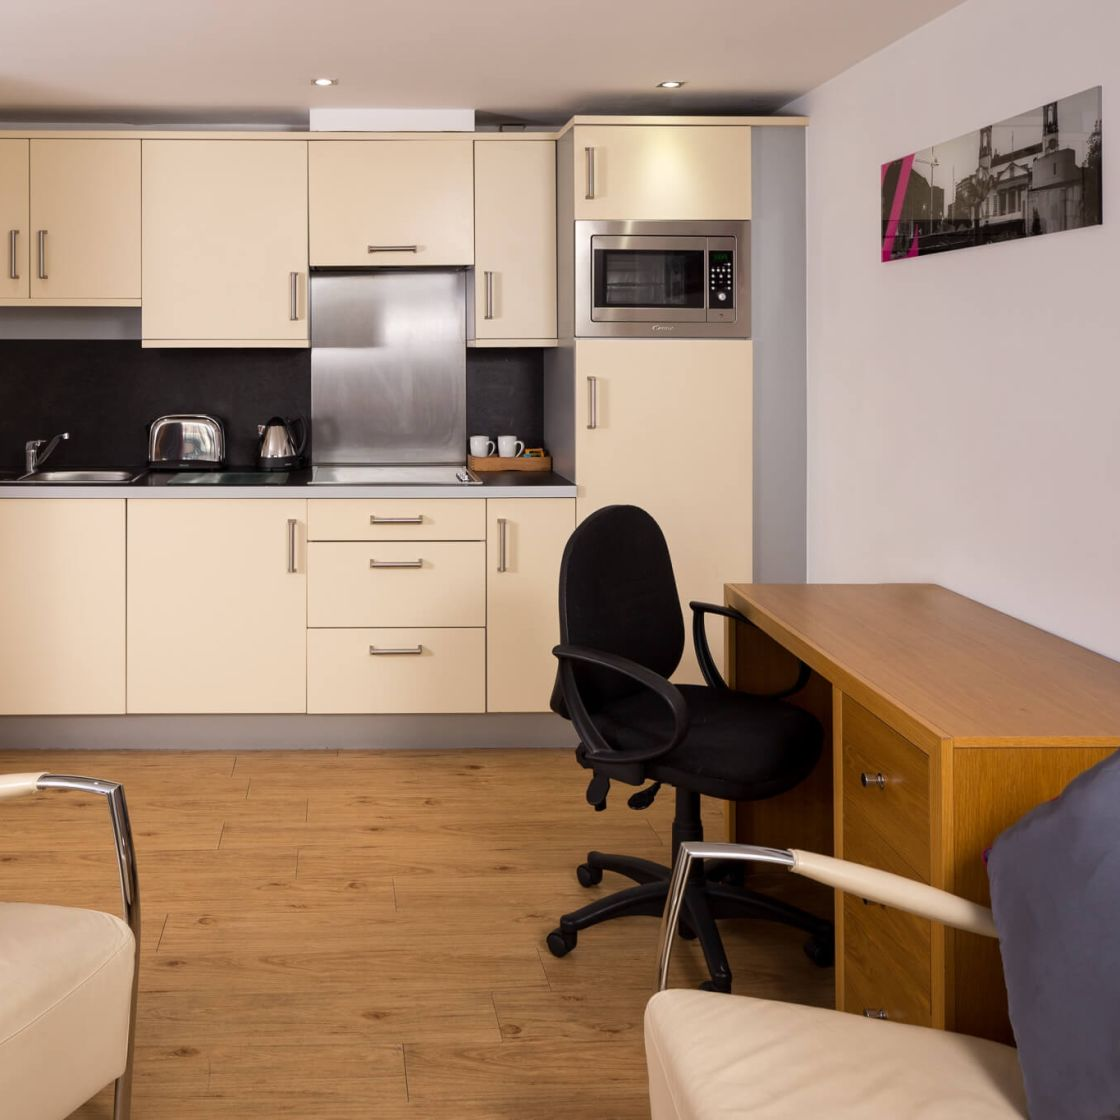 Grande Studio Student Apartment in Leeds with Kitchen and Desk. IconInc @ Roomzzz Leeds City West